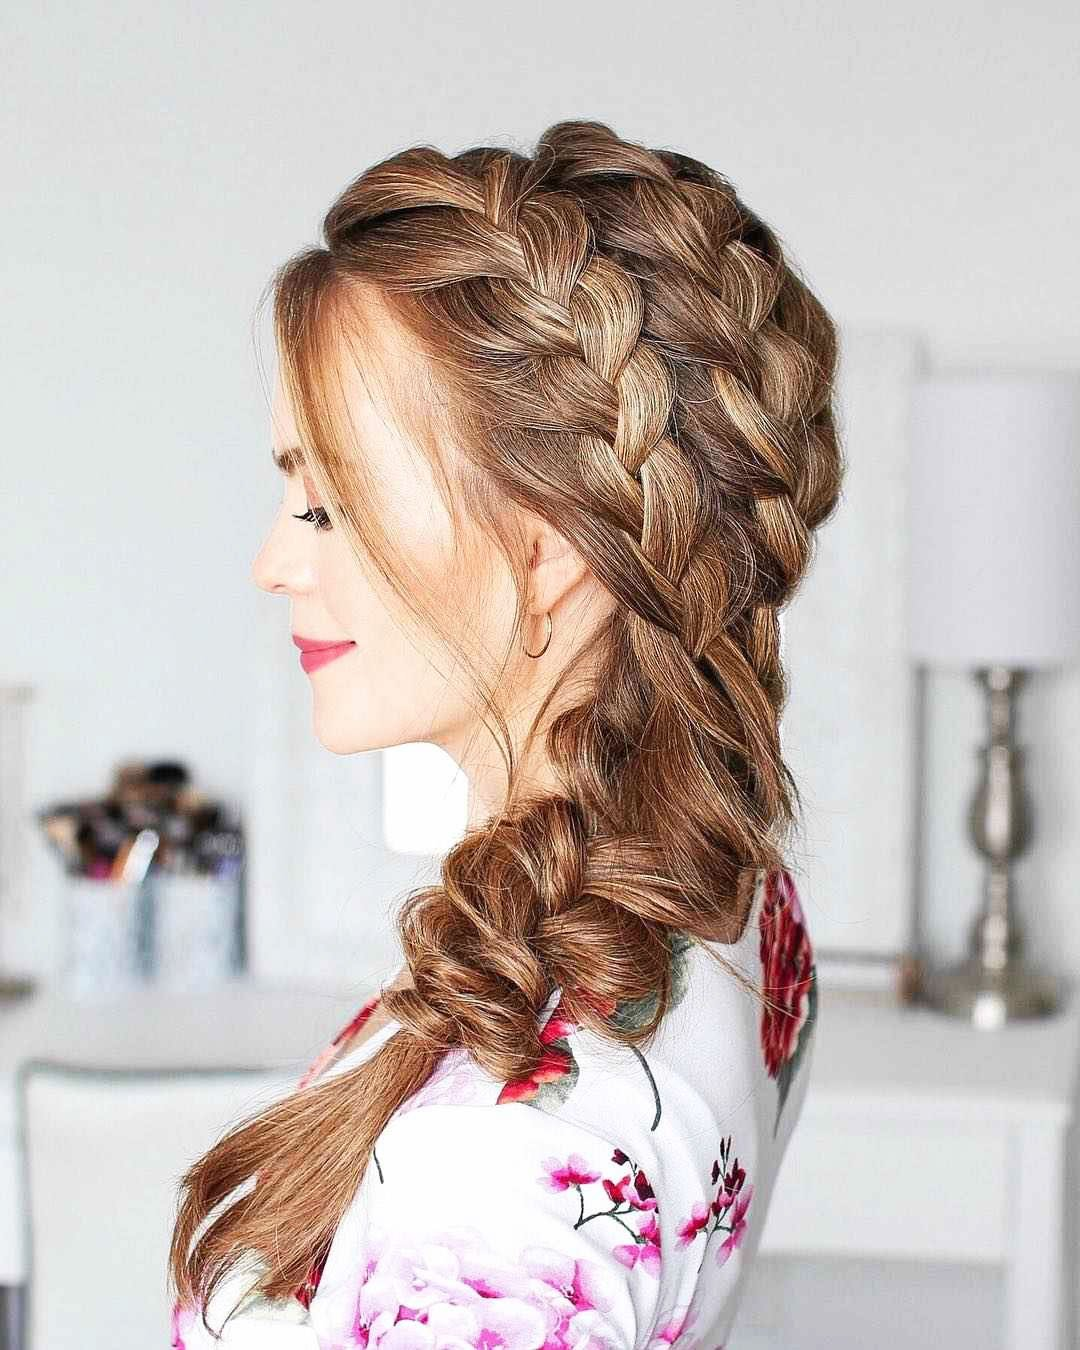 Hairstyles For Prom On Long Hair 2019-2020: Photo 16